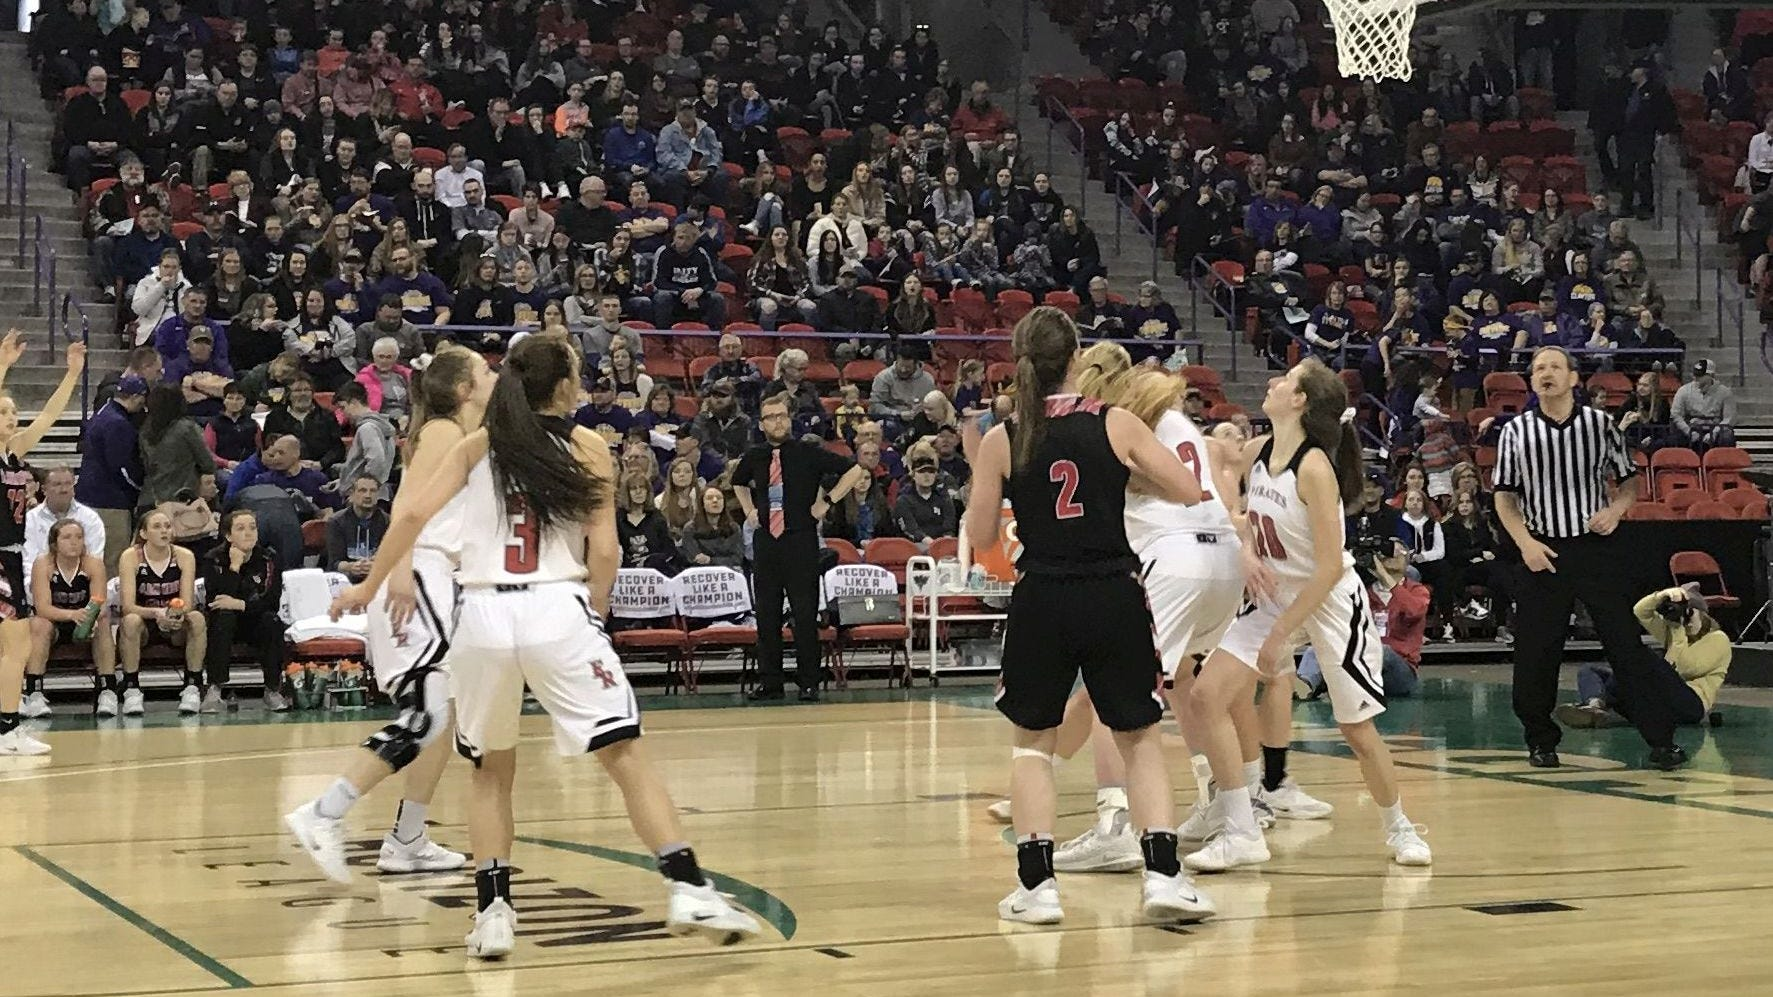 WIAA state girls basketball roundup: Bay Port beats Middleton to win Division 1 state title